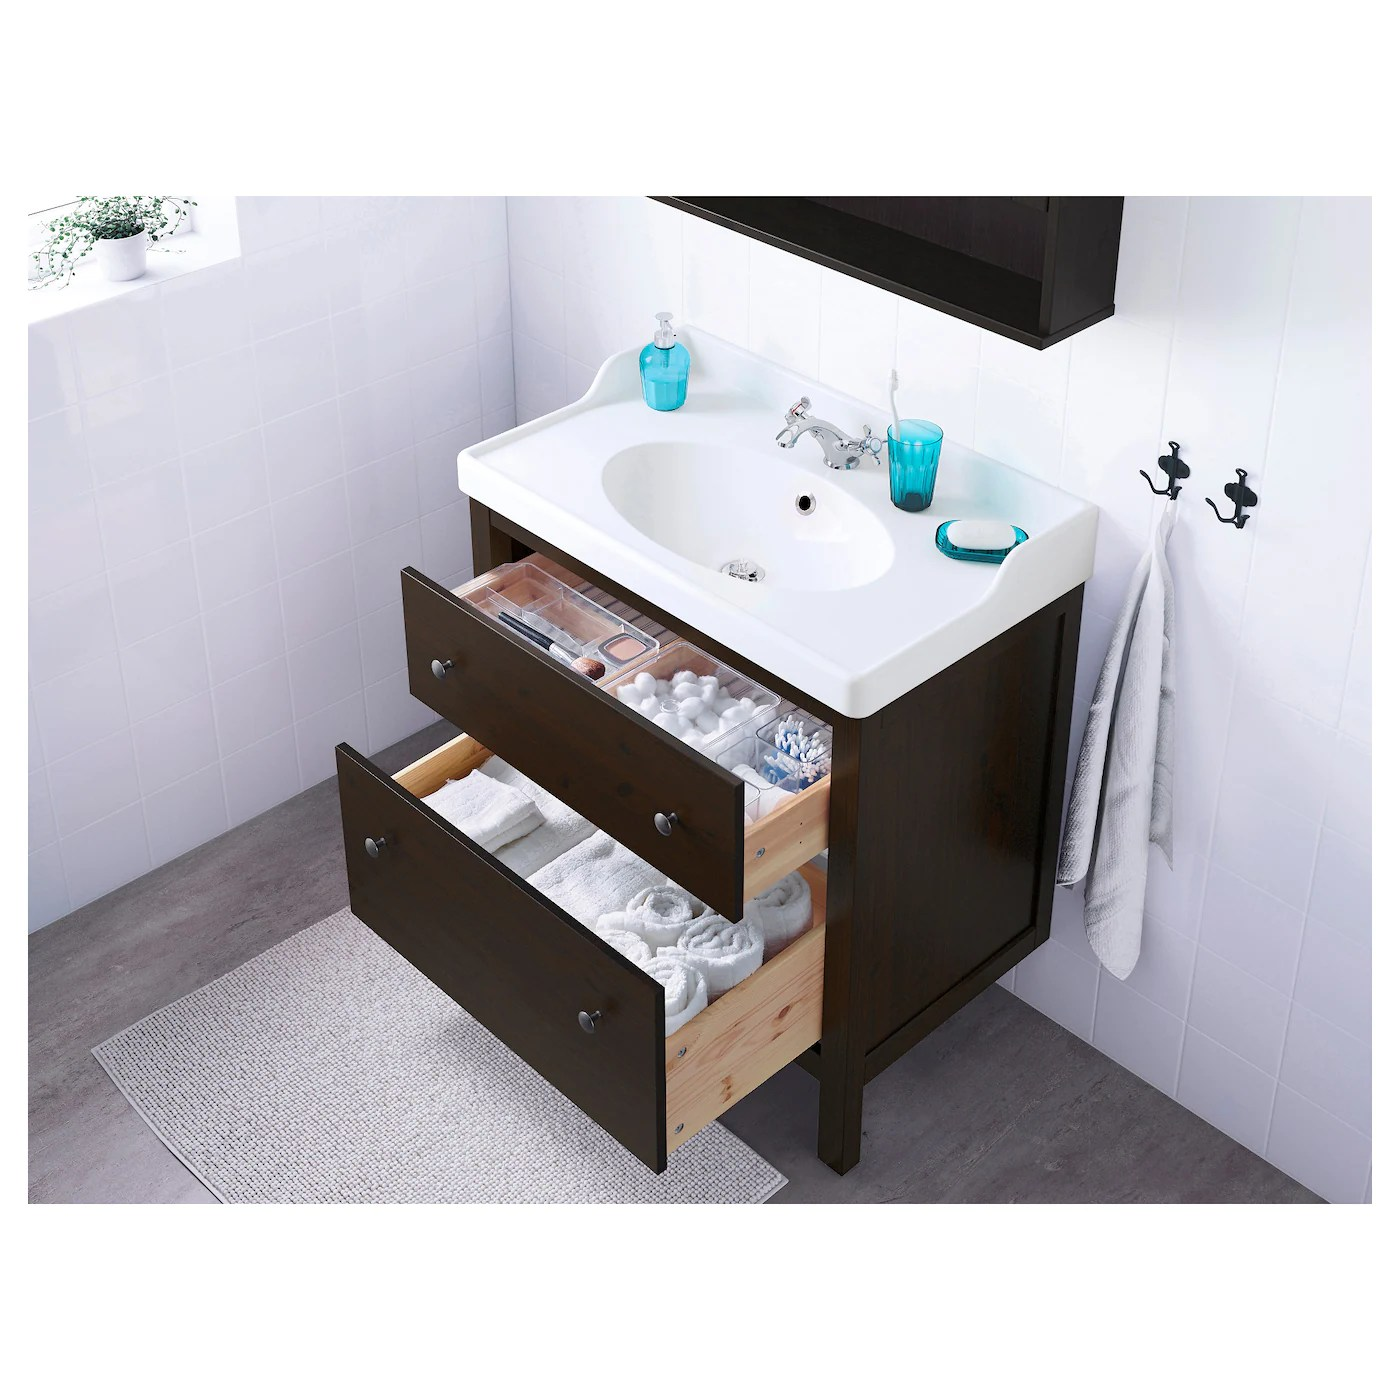 hemnes sink cabinet with 2 drawers black brown stain 31 1 2x18 1 2x32 5 8